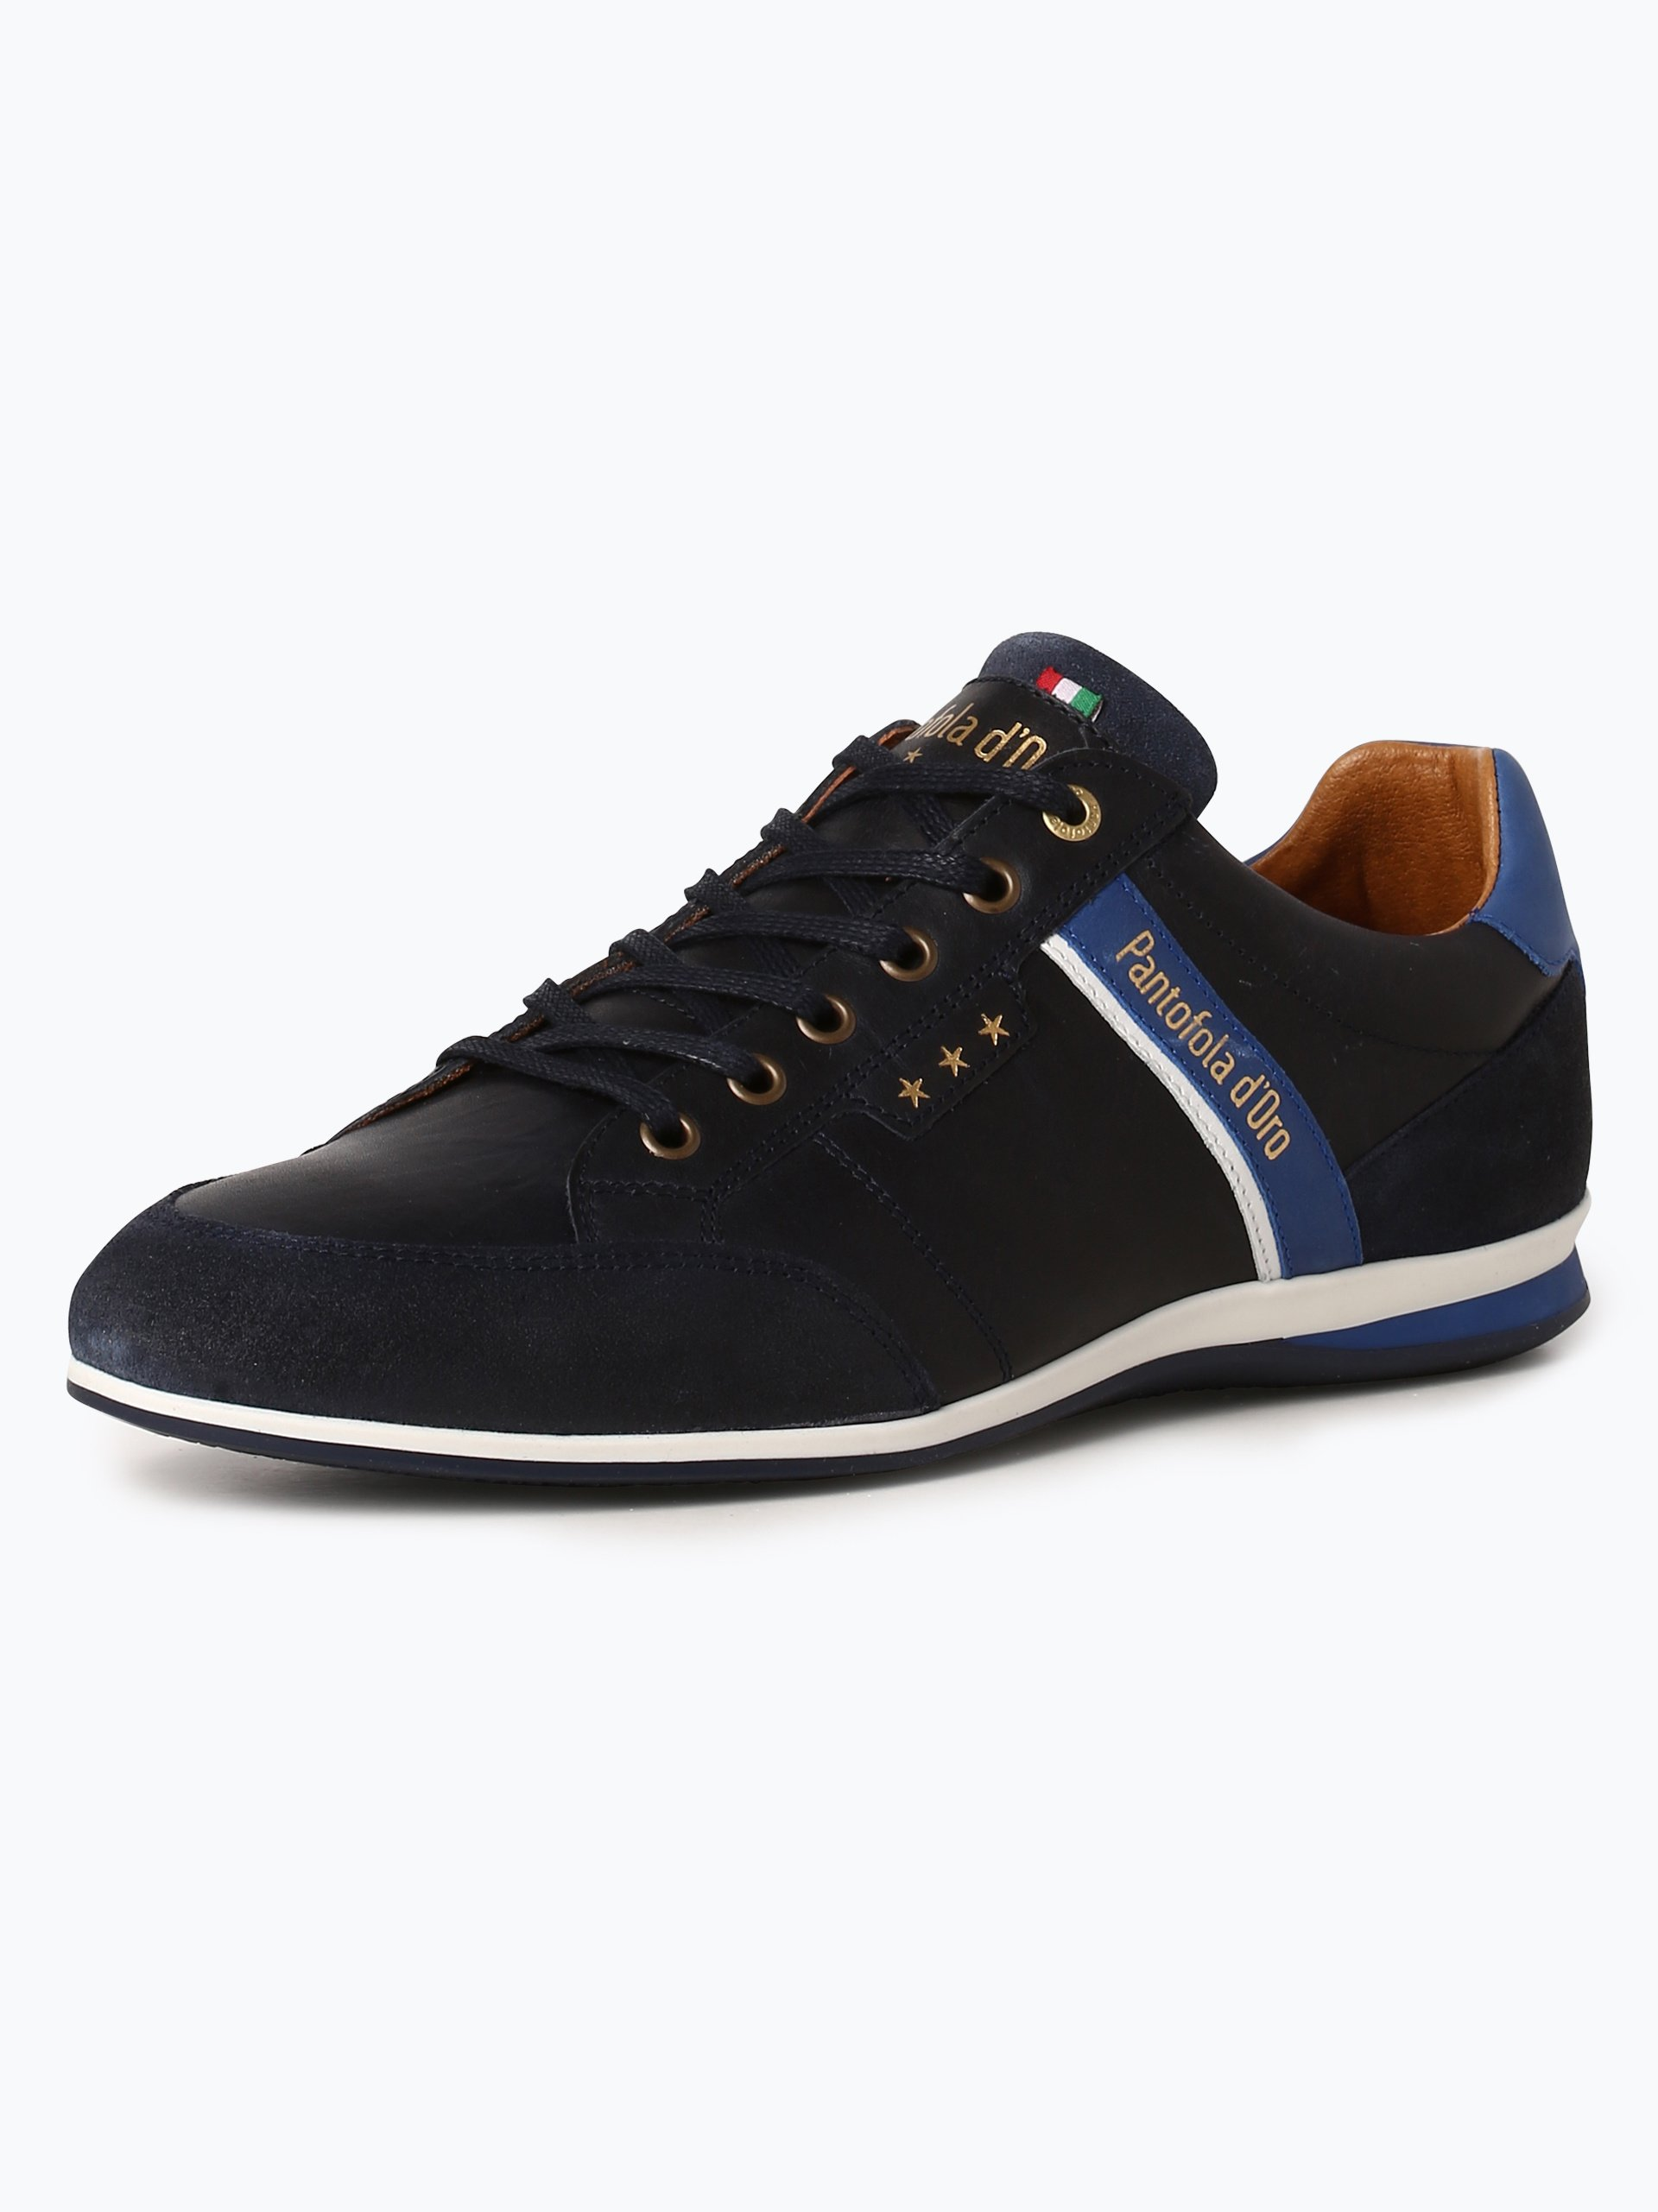 pantofola d oro herren sneaker aus leder roma blau uni. Black Bedroom Furniture Sets. Home Design Ideas